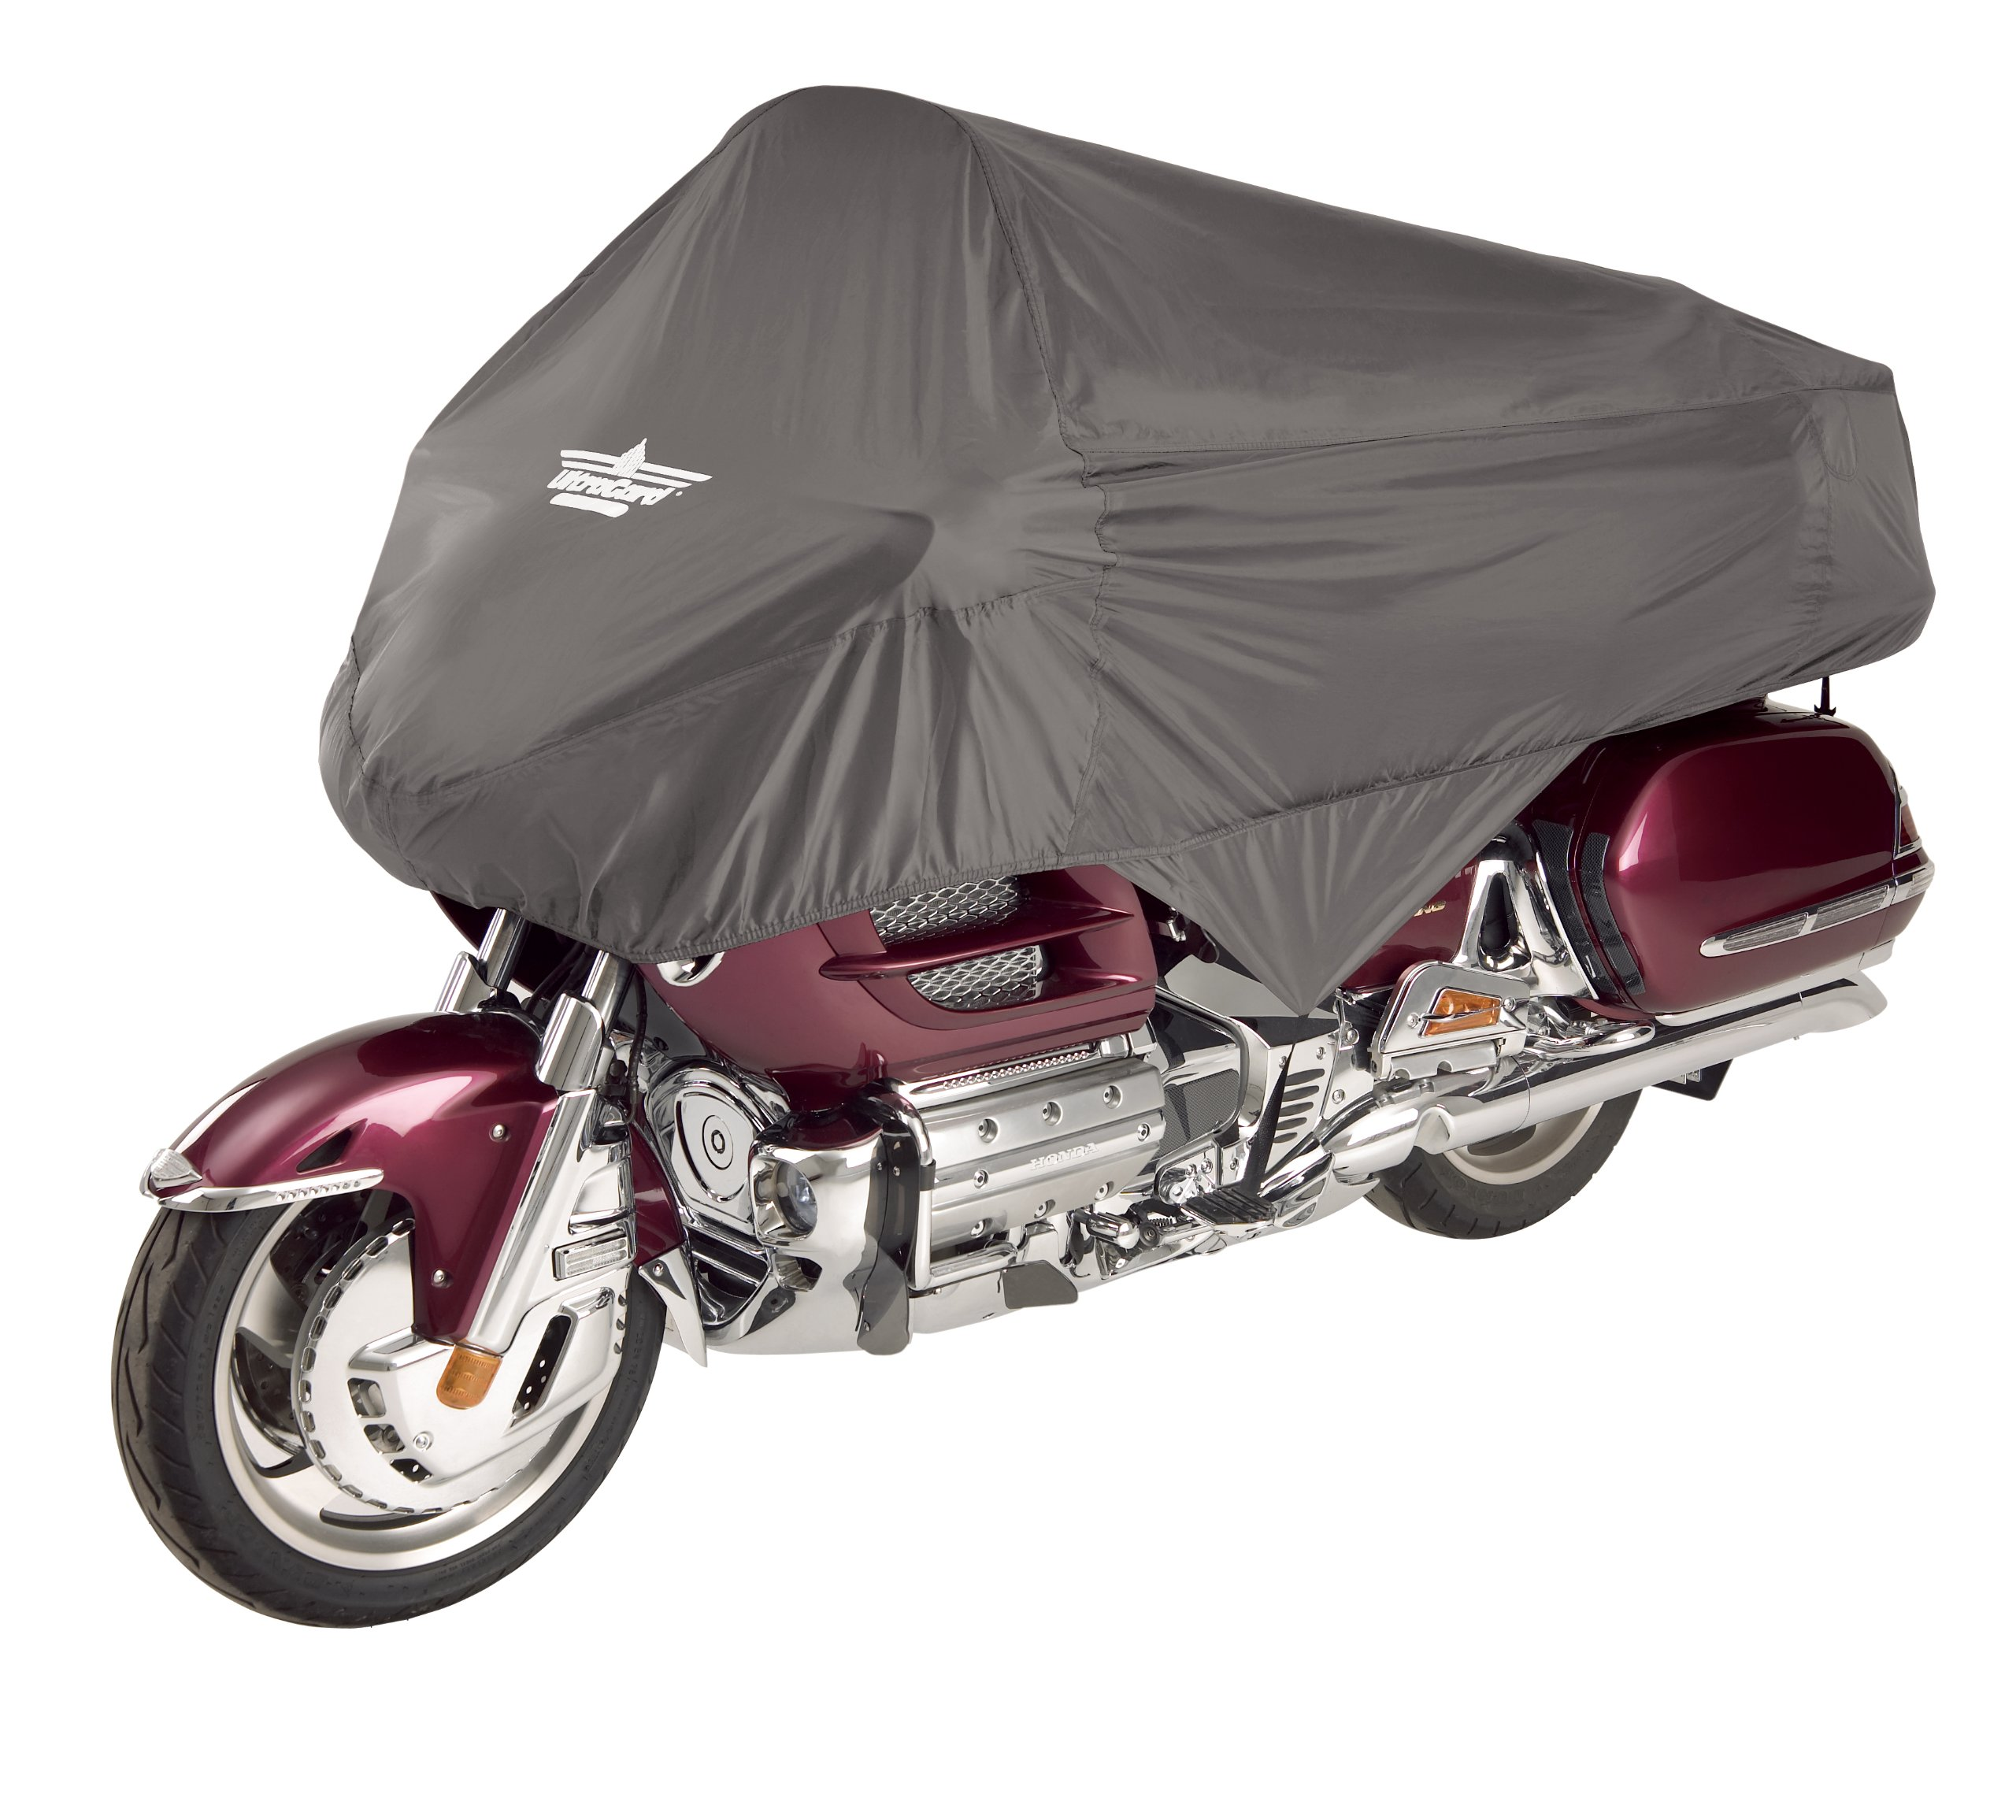 UltraGard 4-458G Charcoal Touring Motorcycle Half Cover by Ultragard (Image #1)